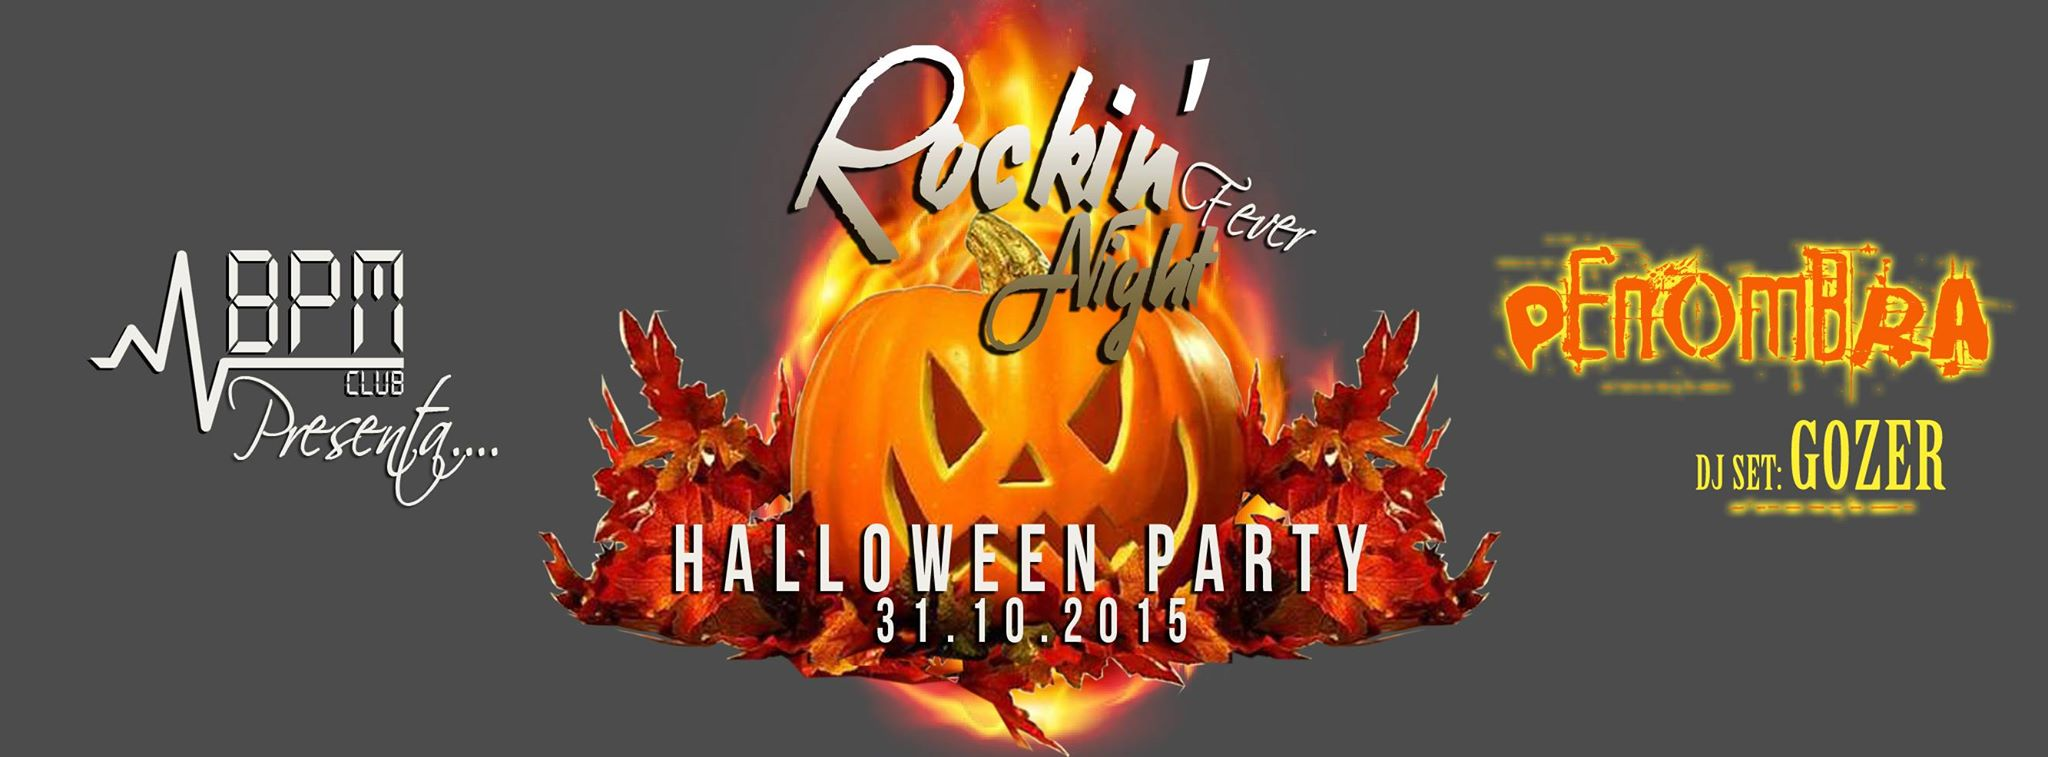 Rockin' night fever – Halloween Party